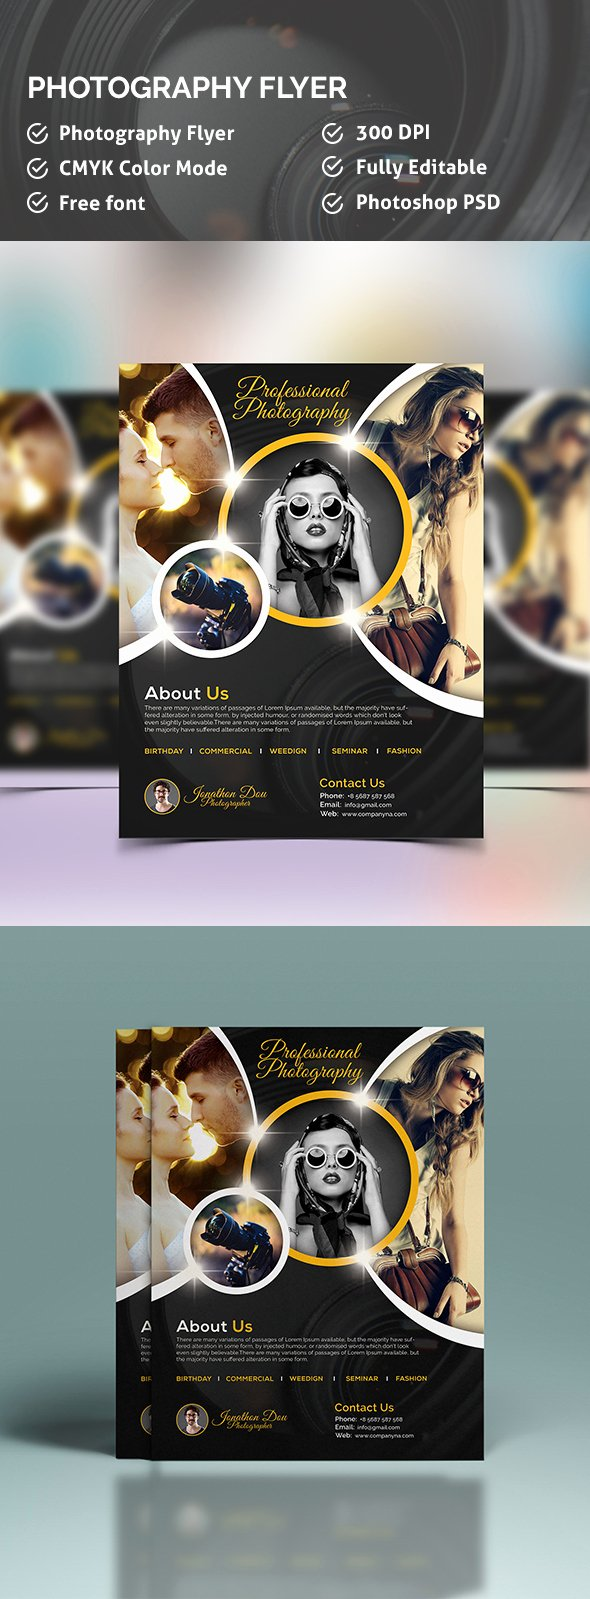 Photography Flyer Template Free Awesome Graphy Flyer Template